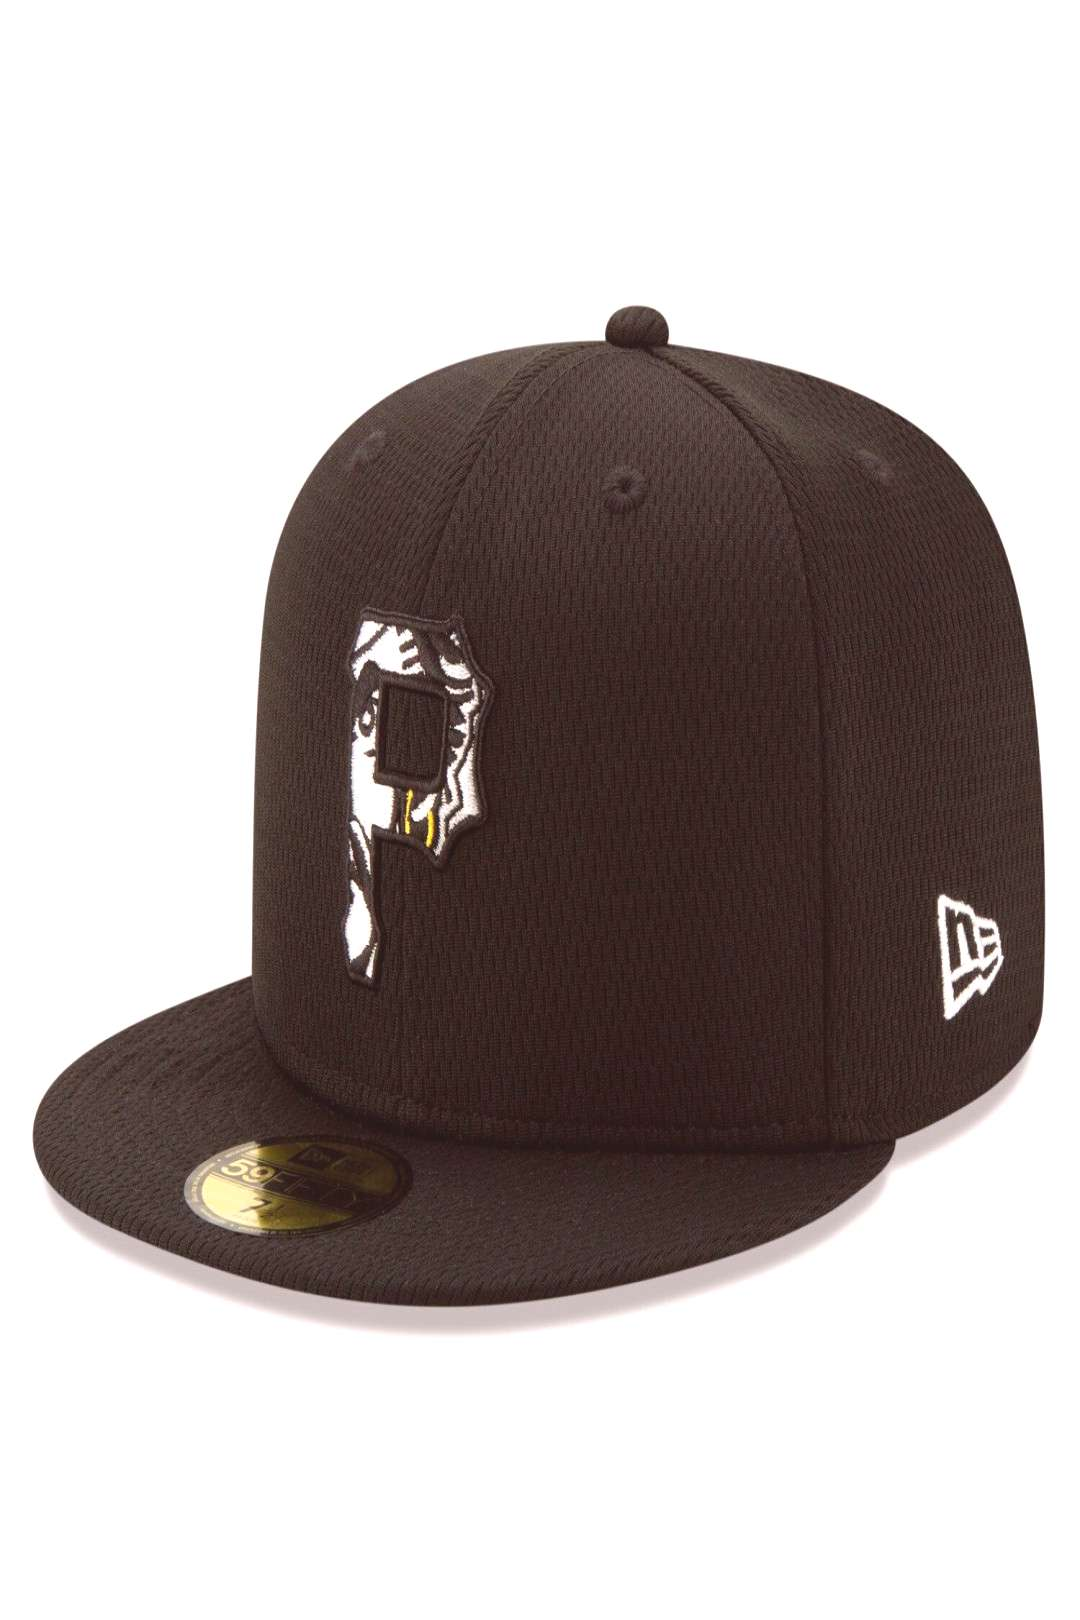 Mens New Era Black/White Pittsburgh Pirates 2020 Batting Practice 59FIFTY Fitted Hat